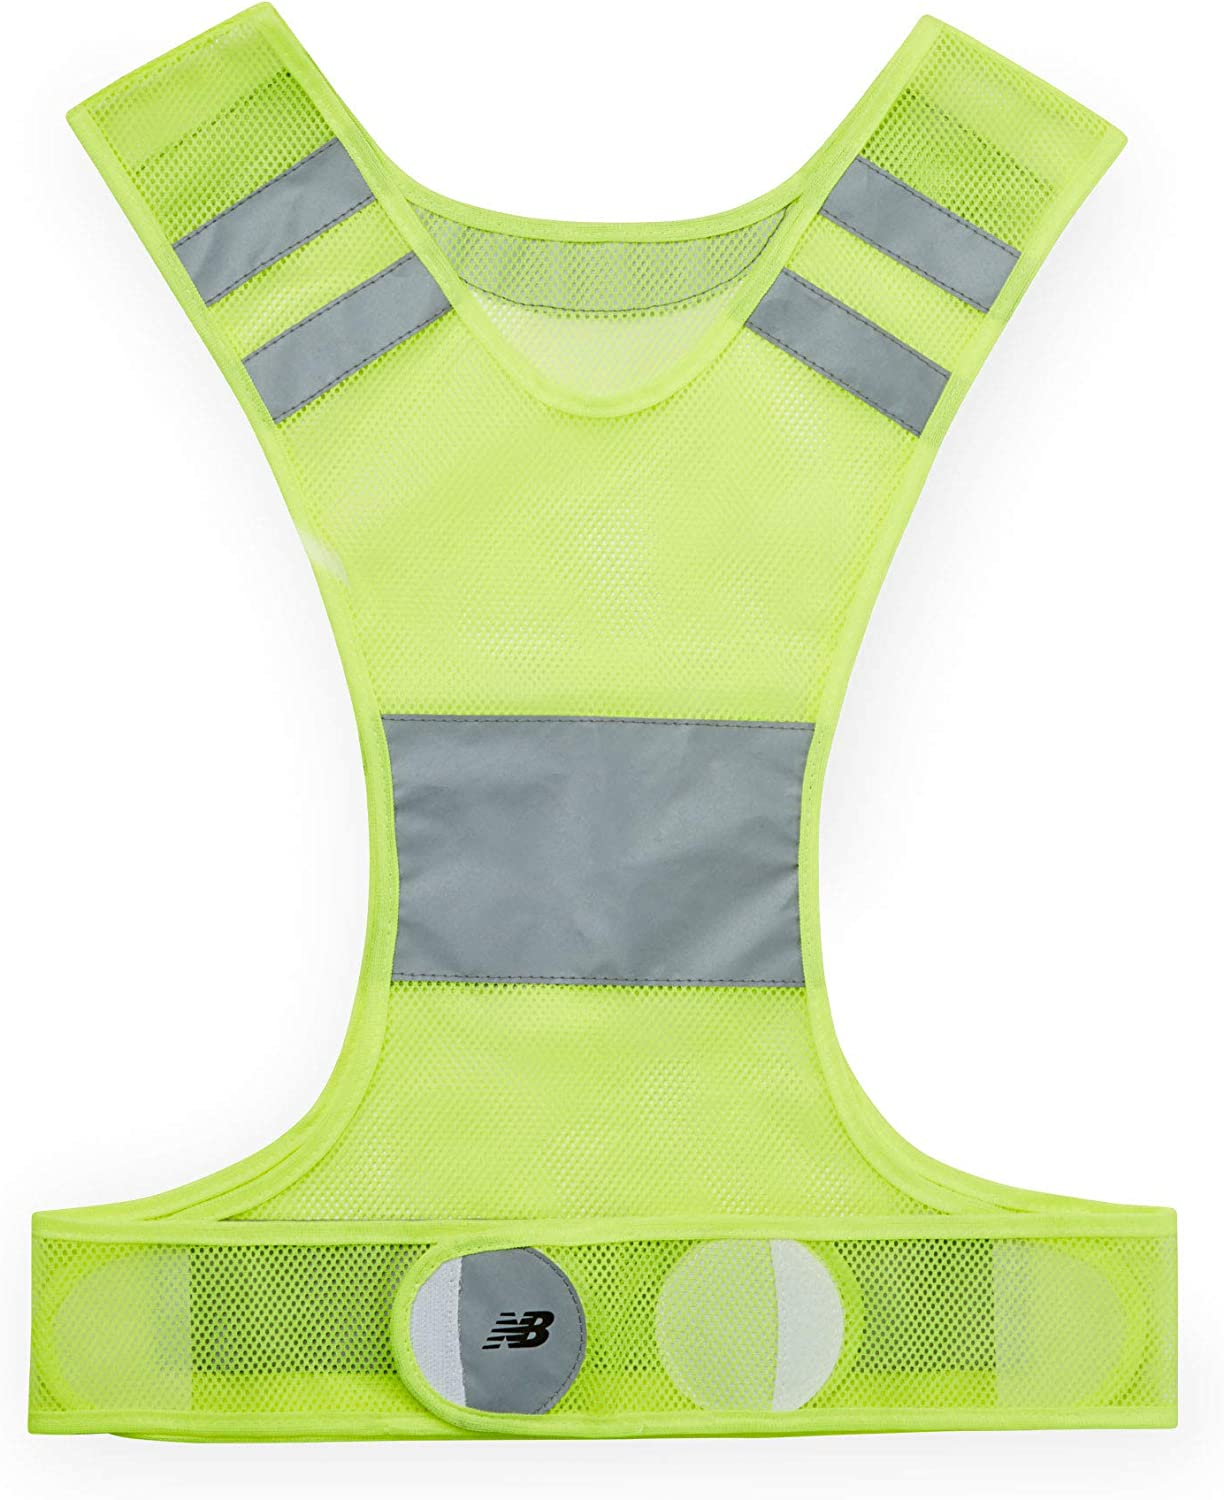 Visibility Neon Vest Reflective Belt Safety Vest Fits for Running Cycling NEW